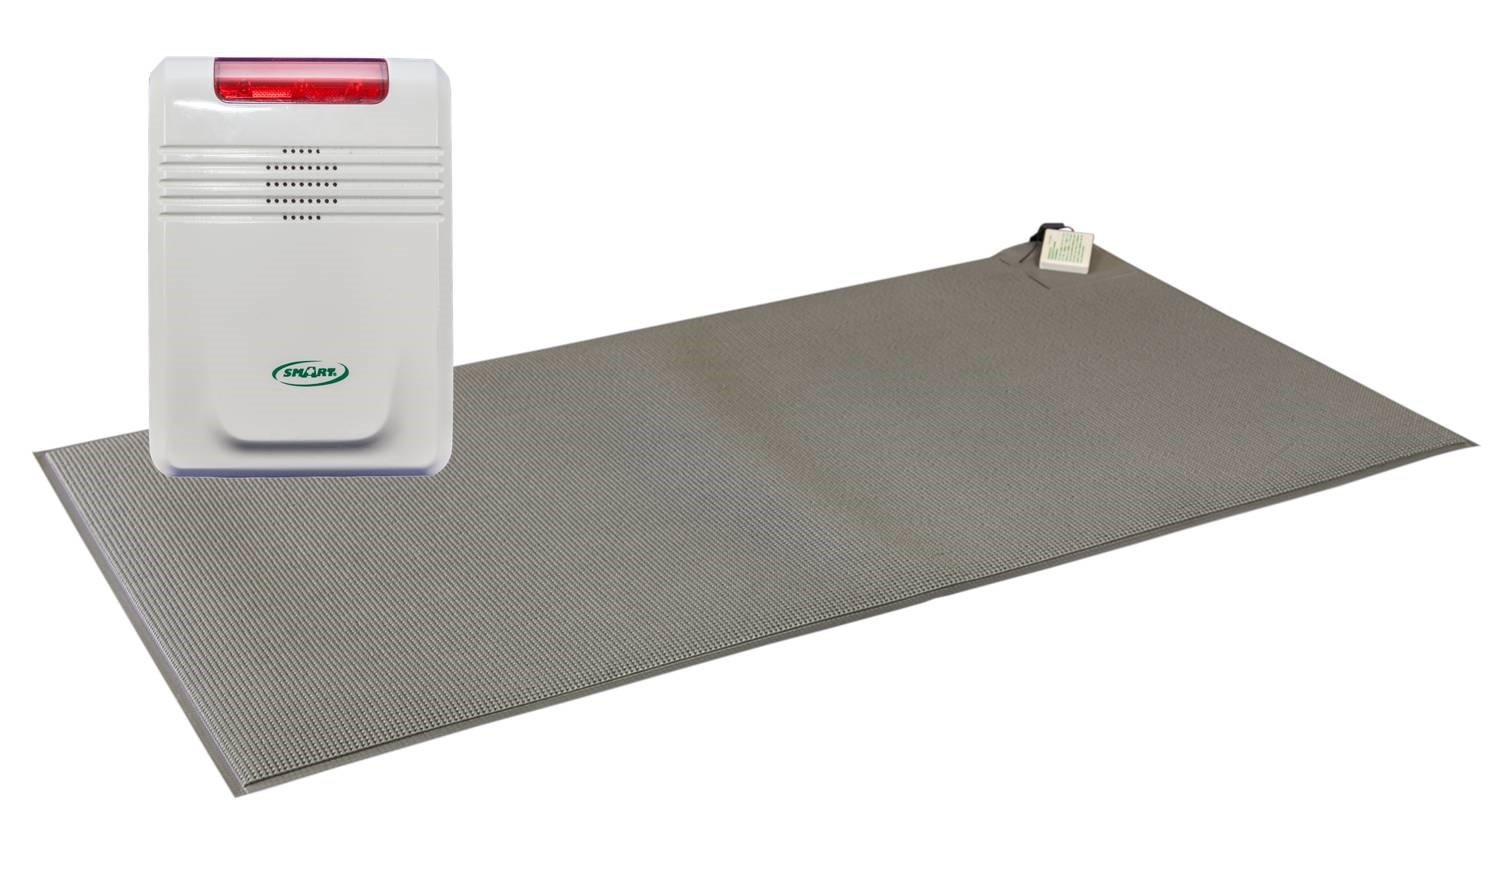 Smart Caregiver Cordless Floor Mat Pressure Pad with Economy Cordless Alarm (No Alarm in Patient's Room), Gray, 24'' x 48'' by Smart Caregiver Corporation